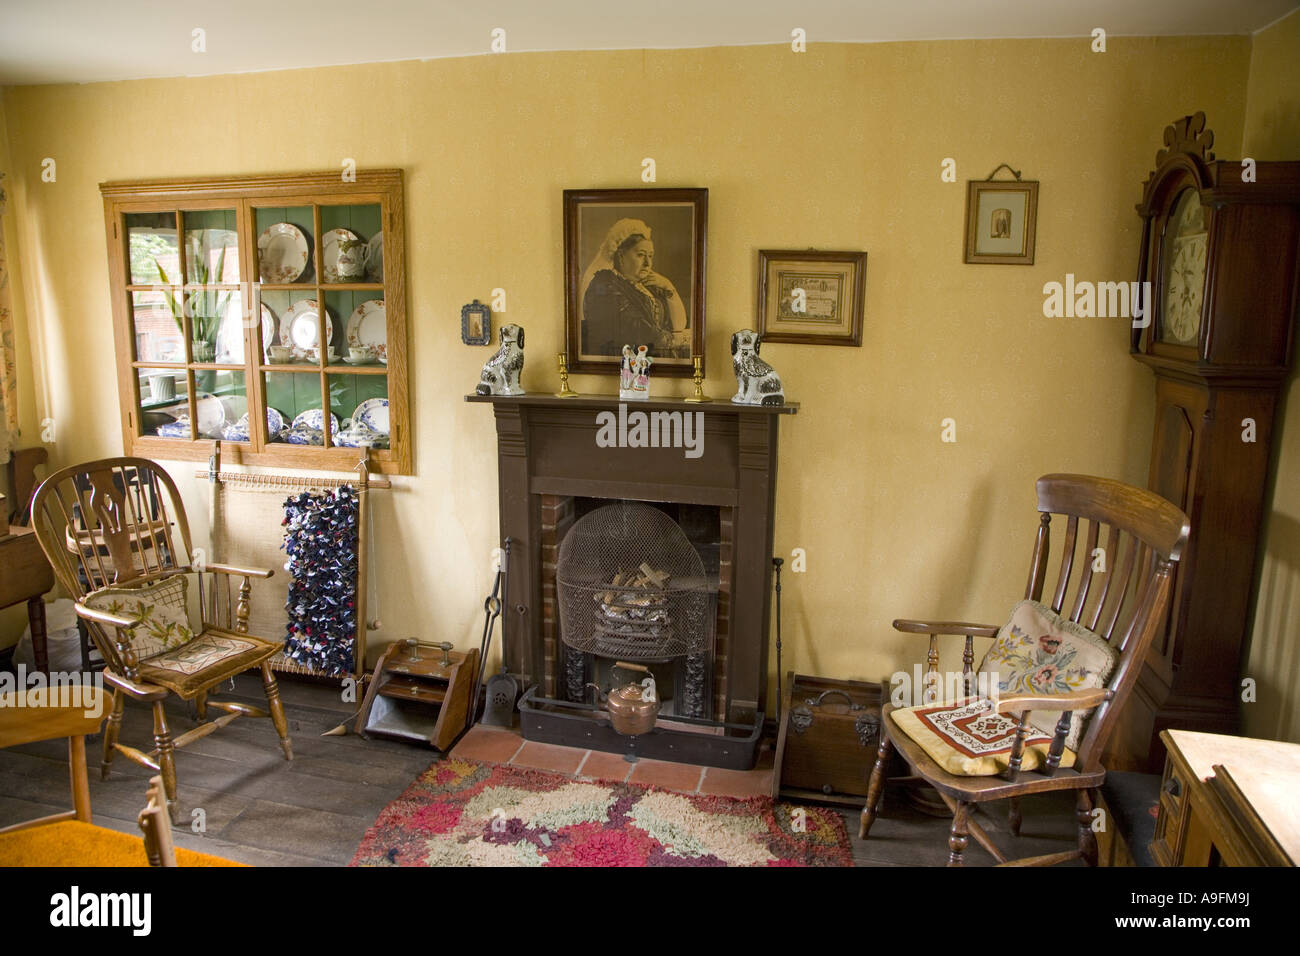 Victorian Farmhouse Living Room Stock Photo: 12353261 - Alamy